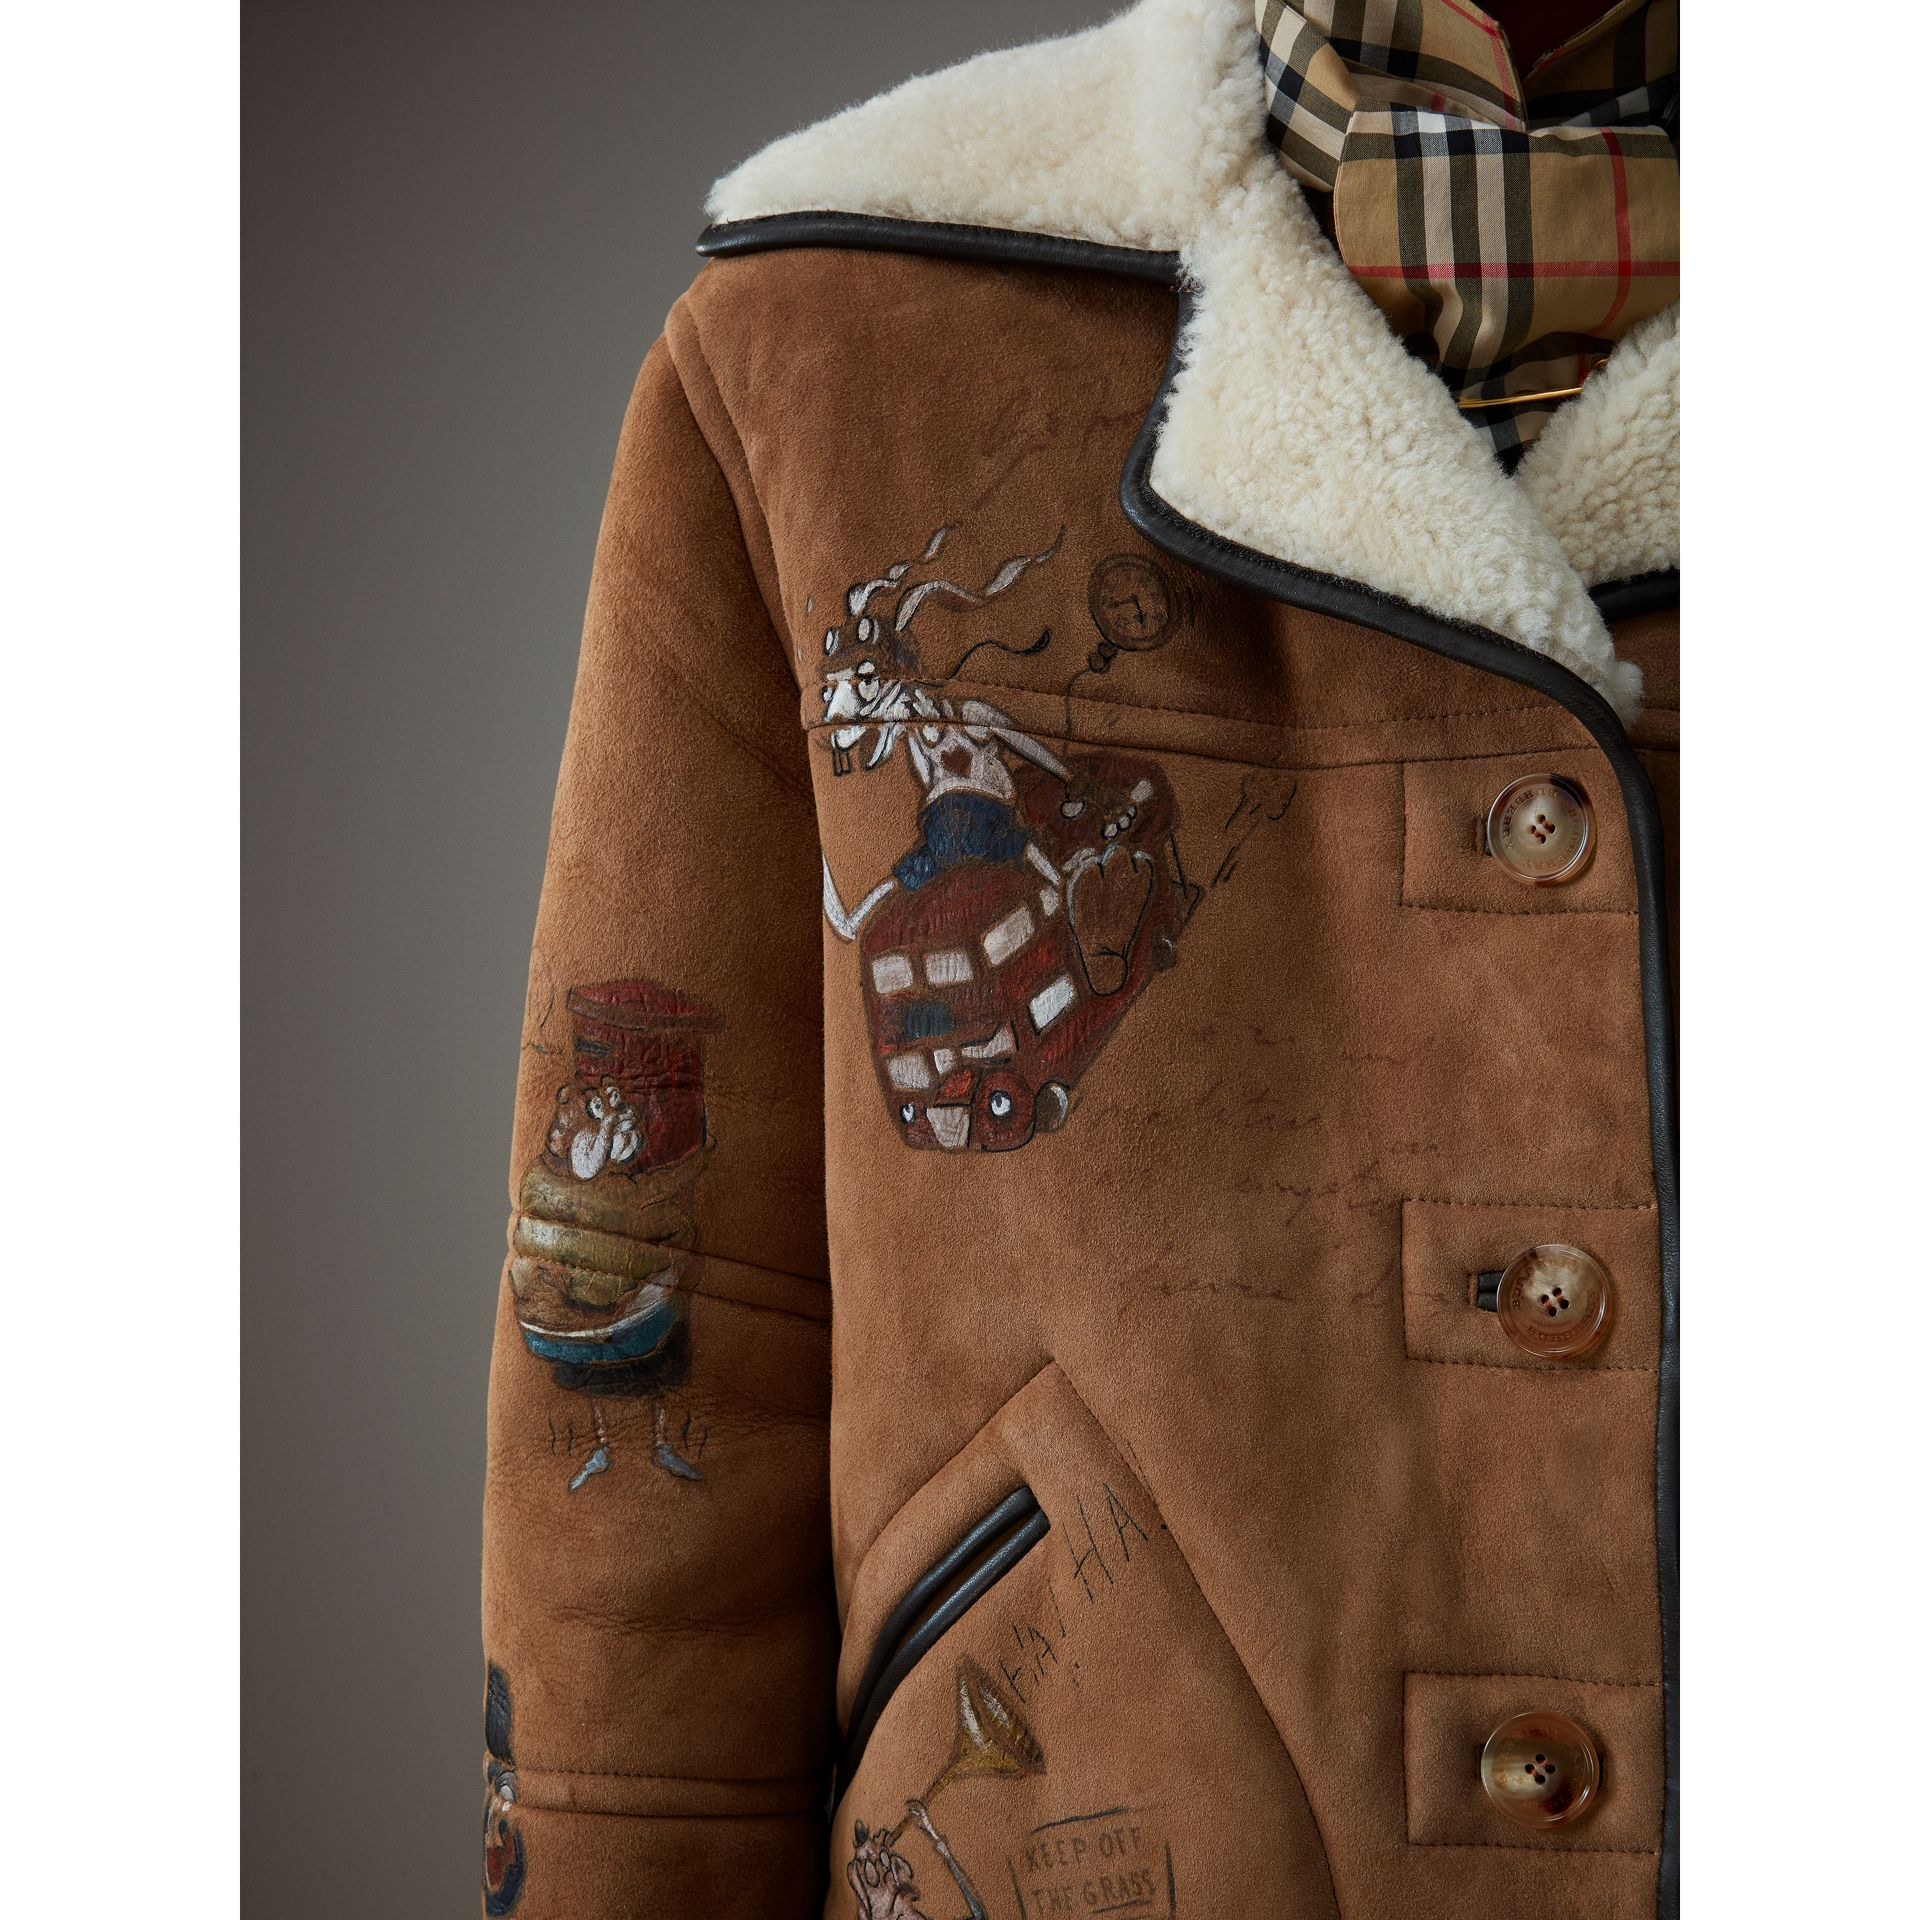 Sketch Print Shearling Jacket in Caramel - Women | Burberry United States - gallery image 1